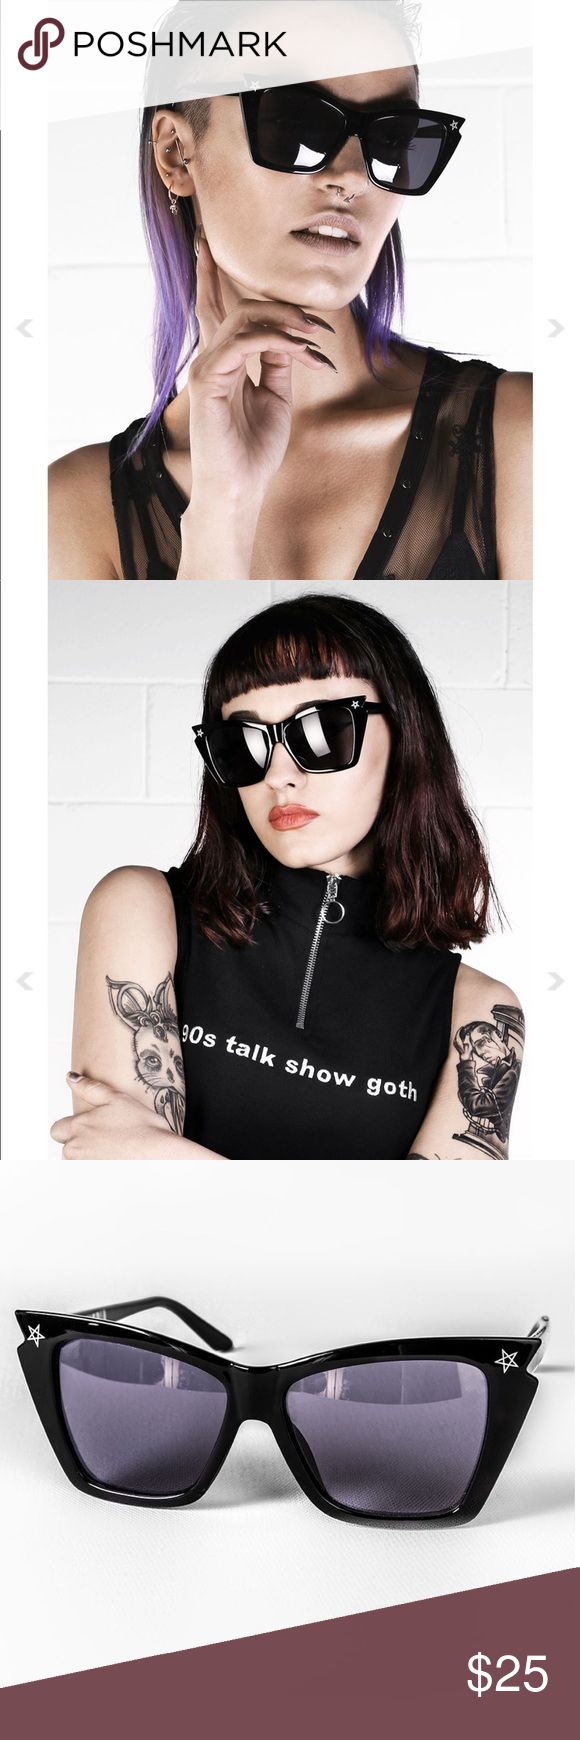 DISTURBIA No Wave Sunglasses DISTURBIA No Wave Sunglasses. NEW IN ORIGINAL PACKAGING. comes with branded storage cloth as well. perfect condition. these sunglasses are super dark with amazing huge frames. Disturbia Accessories Sunglasses